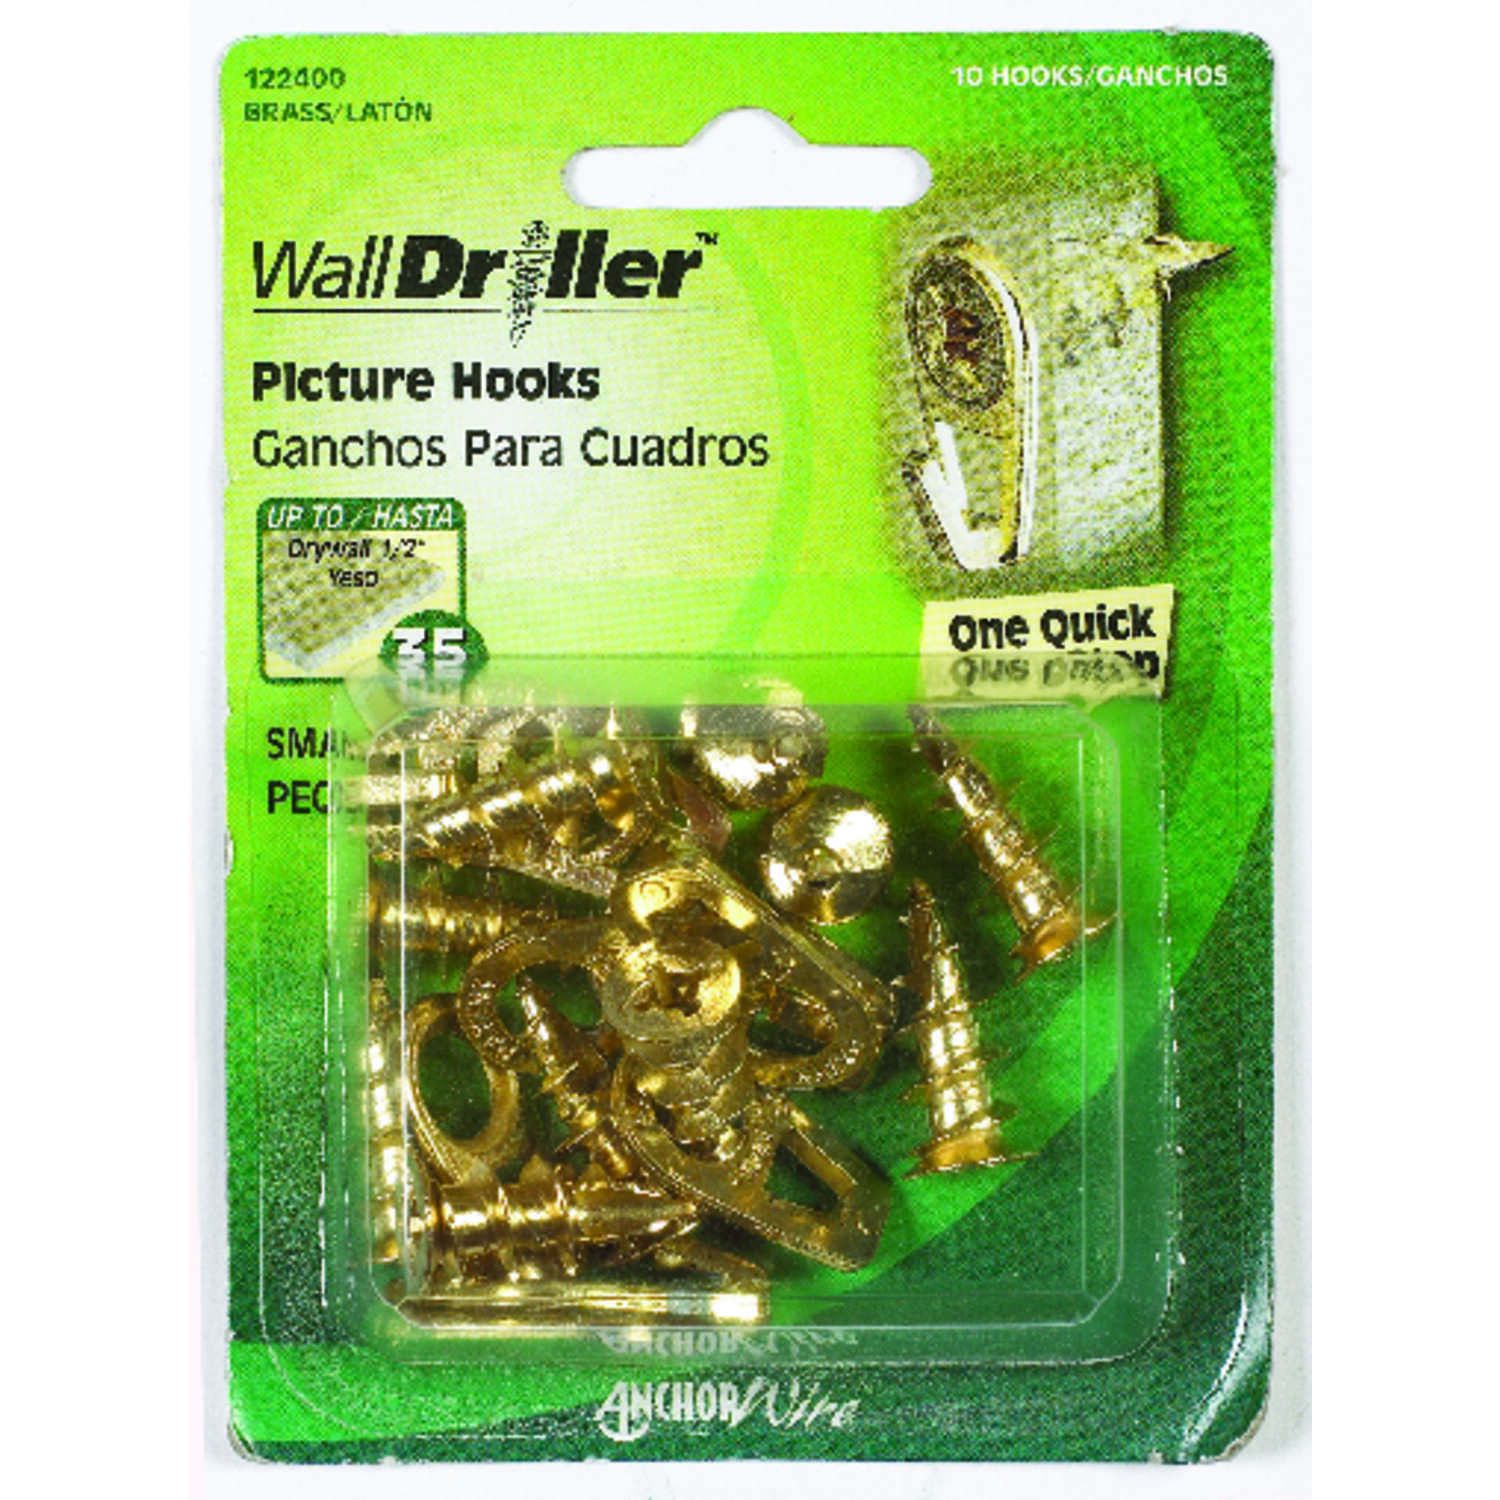 HILLMAN  WallDriller  Brass-Plated  Brass  Drywall  Picture Hook  10 pk 35 lb.